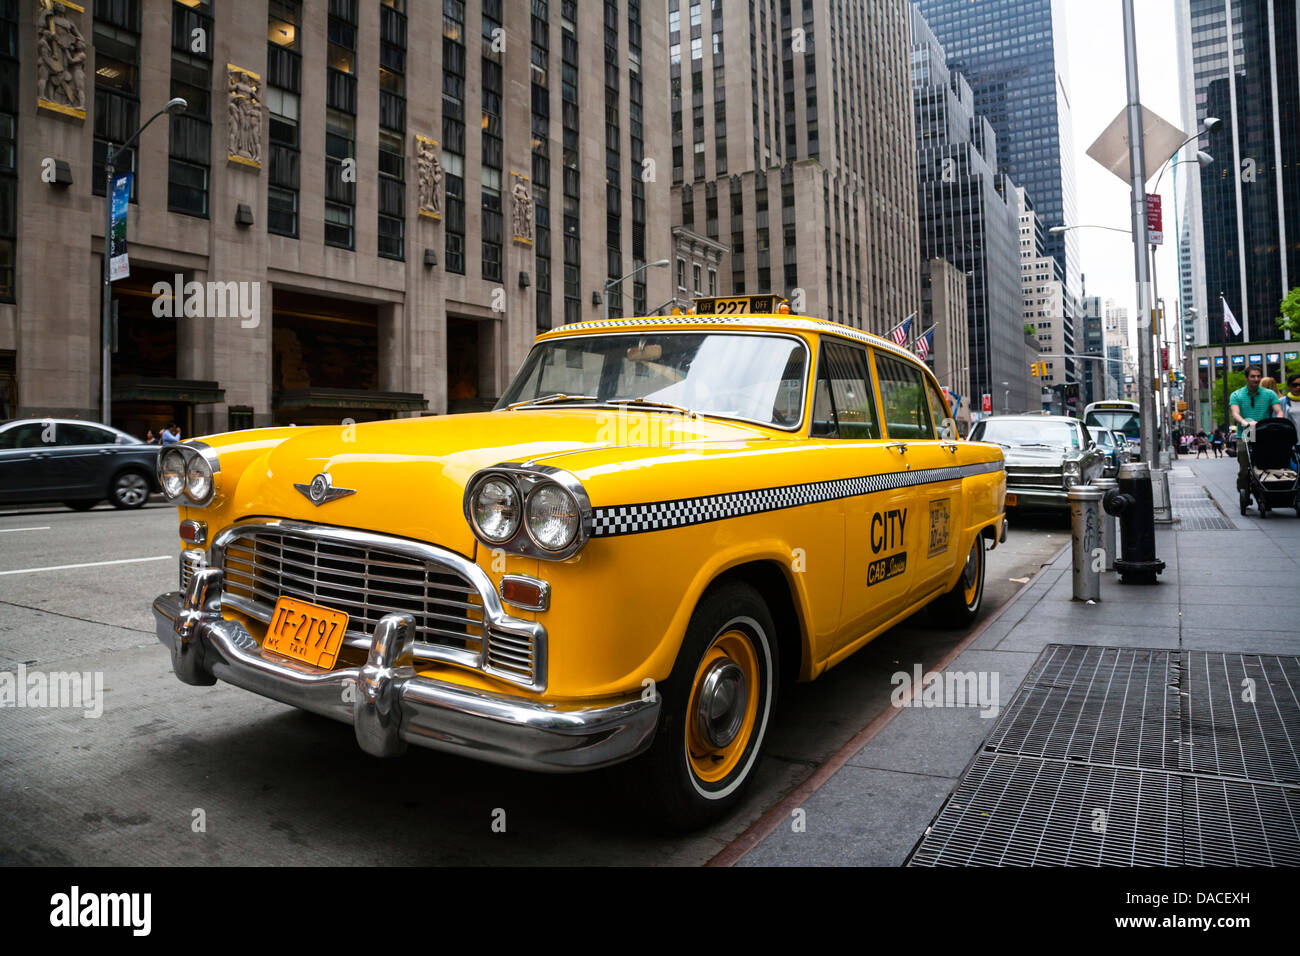 vintage yellow new york taxi nyc usa stock photo royalty free image 58052809 alamy. Black Bedroom Furniture Sets. Home Design Ideas